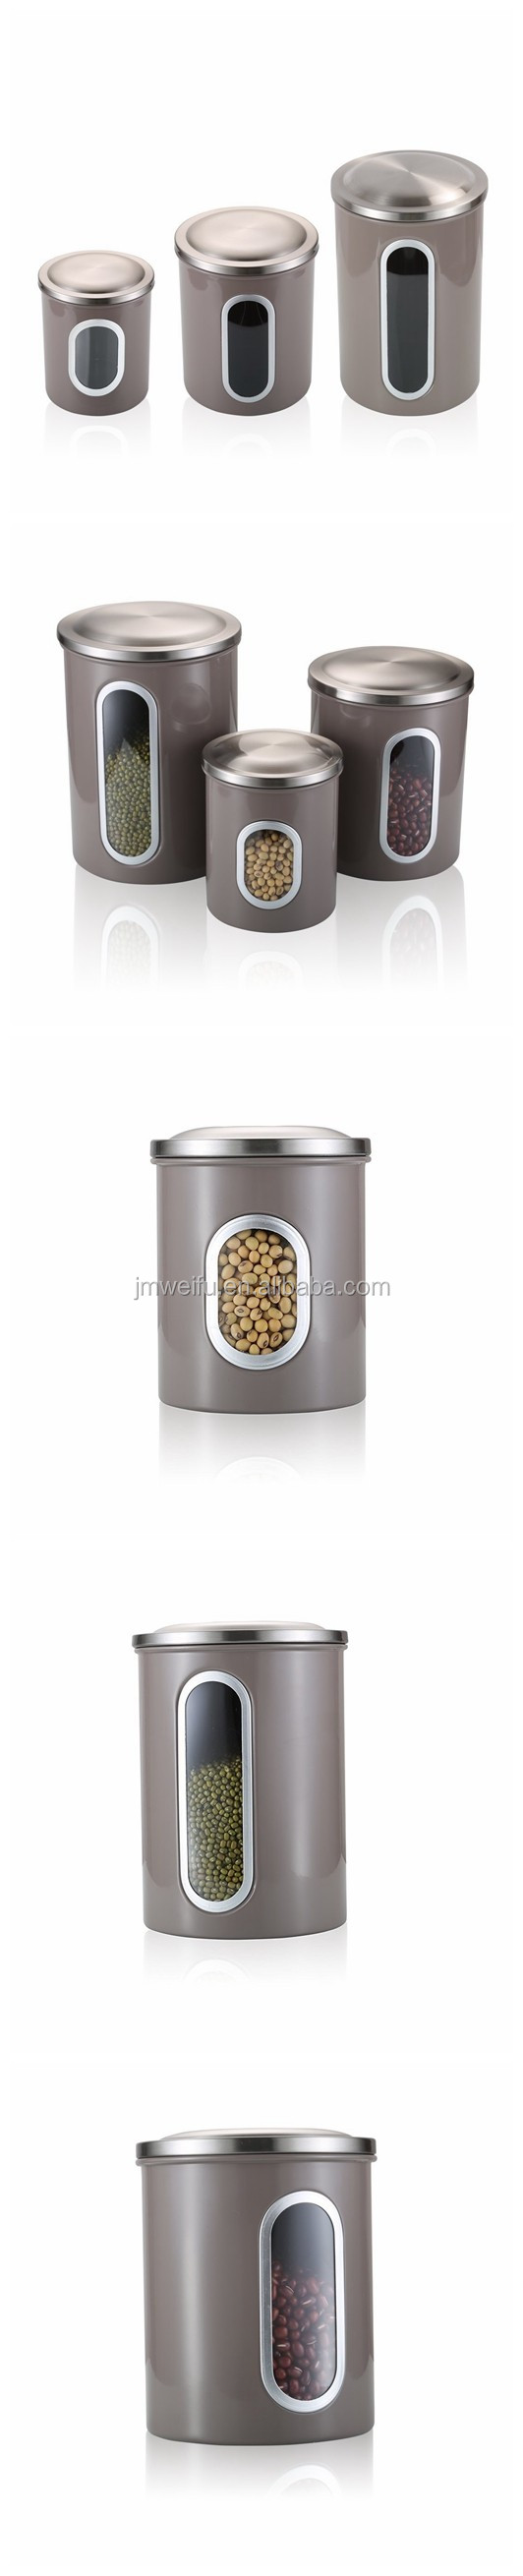 Home Stainless Steel Food Storage Containers set with Window